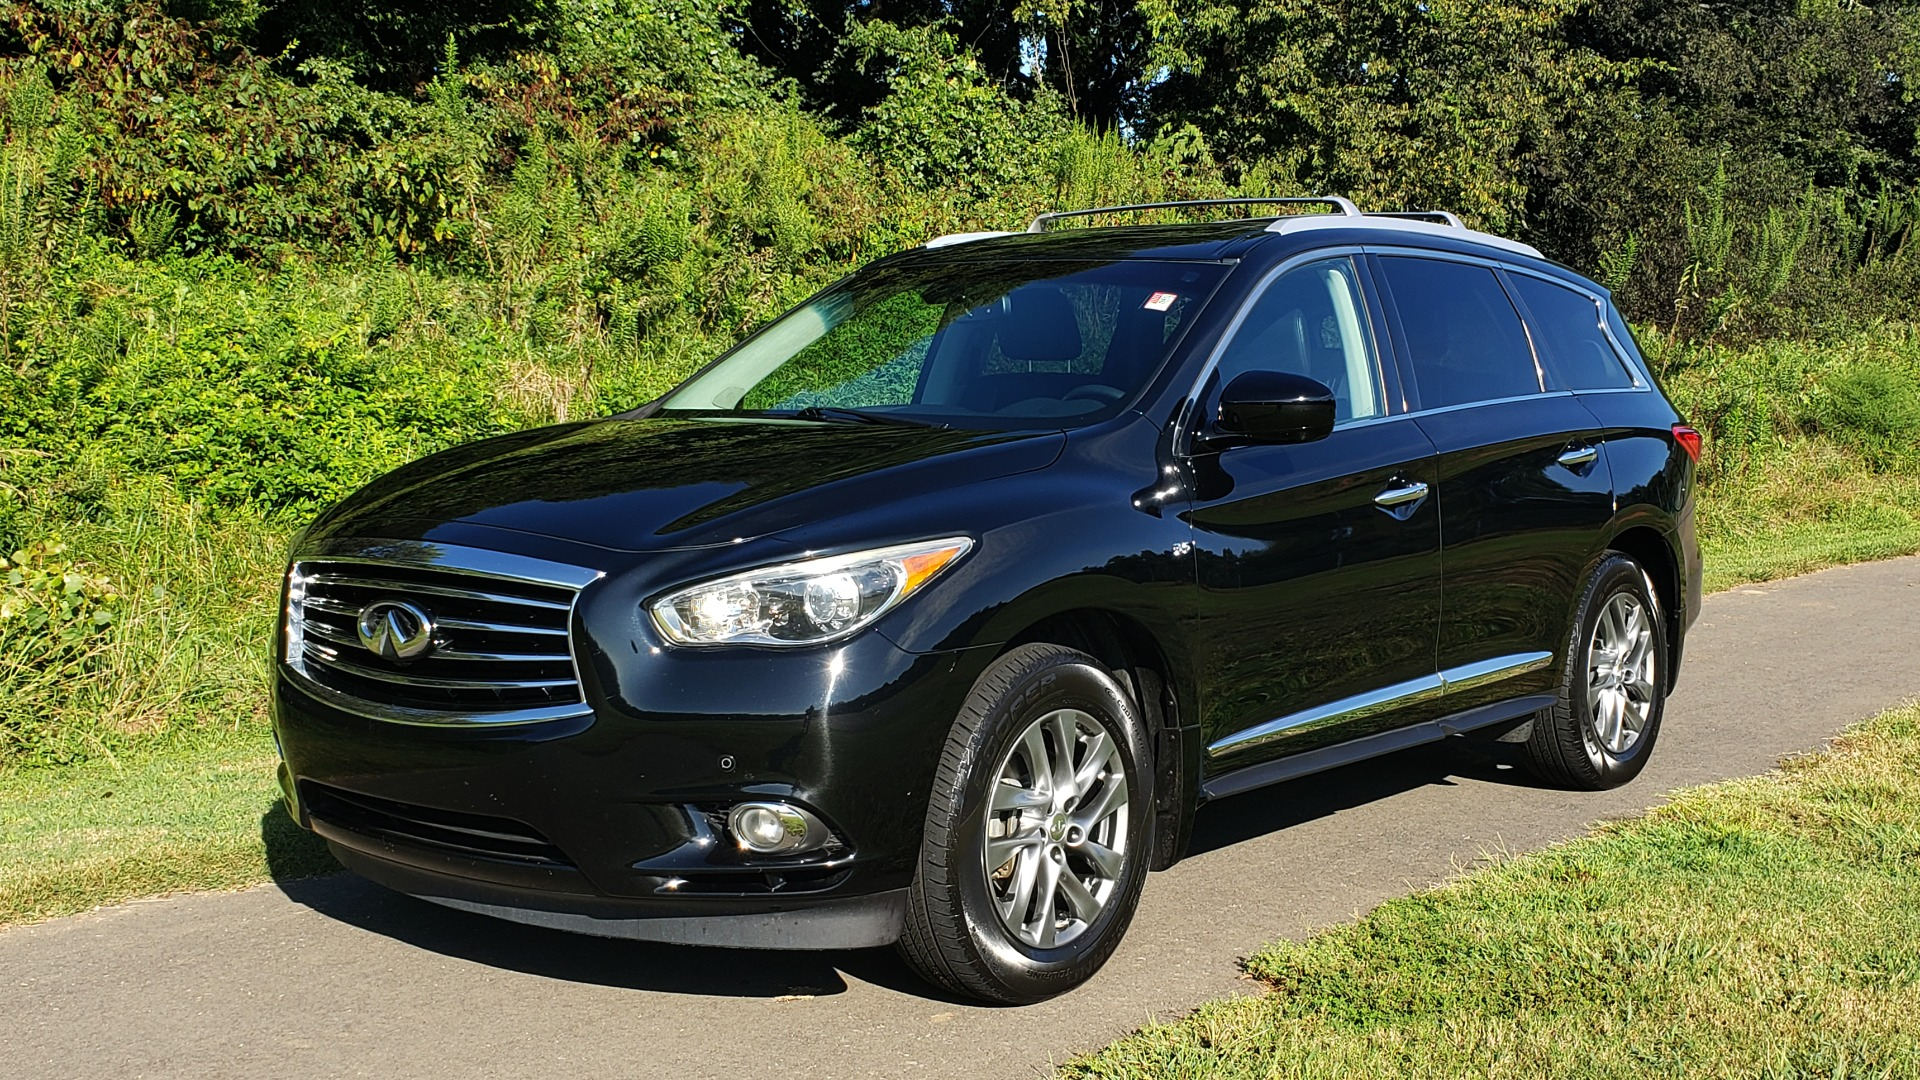 Used 2015 INFINITI QX60 AWD / PREM PLUS PKG / NAV / SUNROOF / BOSE / 3-ROW / REARVIEW for sale $19,695 at Formula Imports in Charlotte NC 28227 5